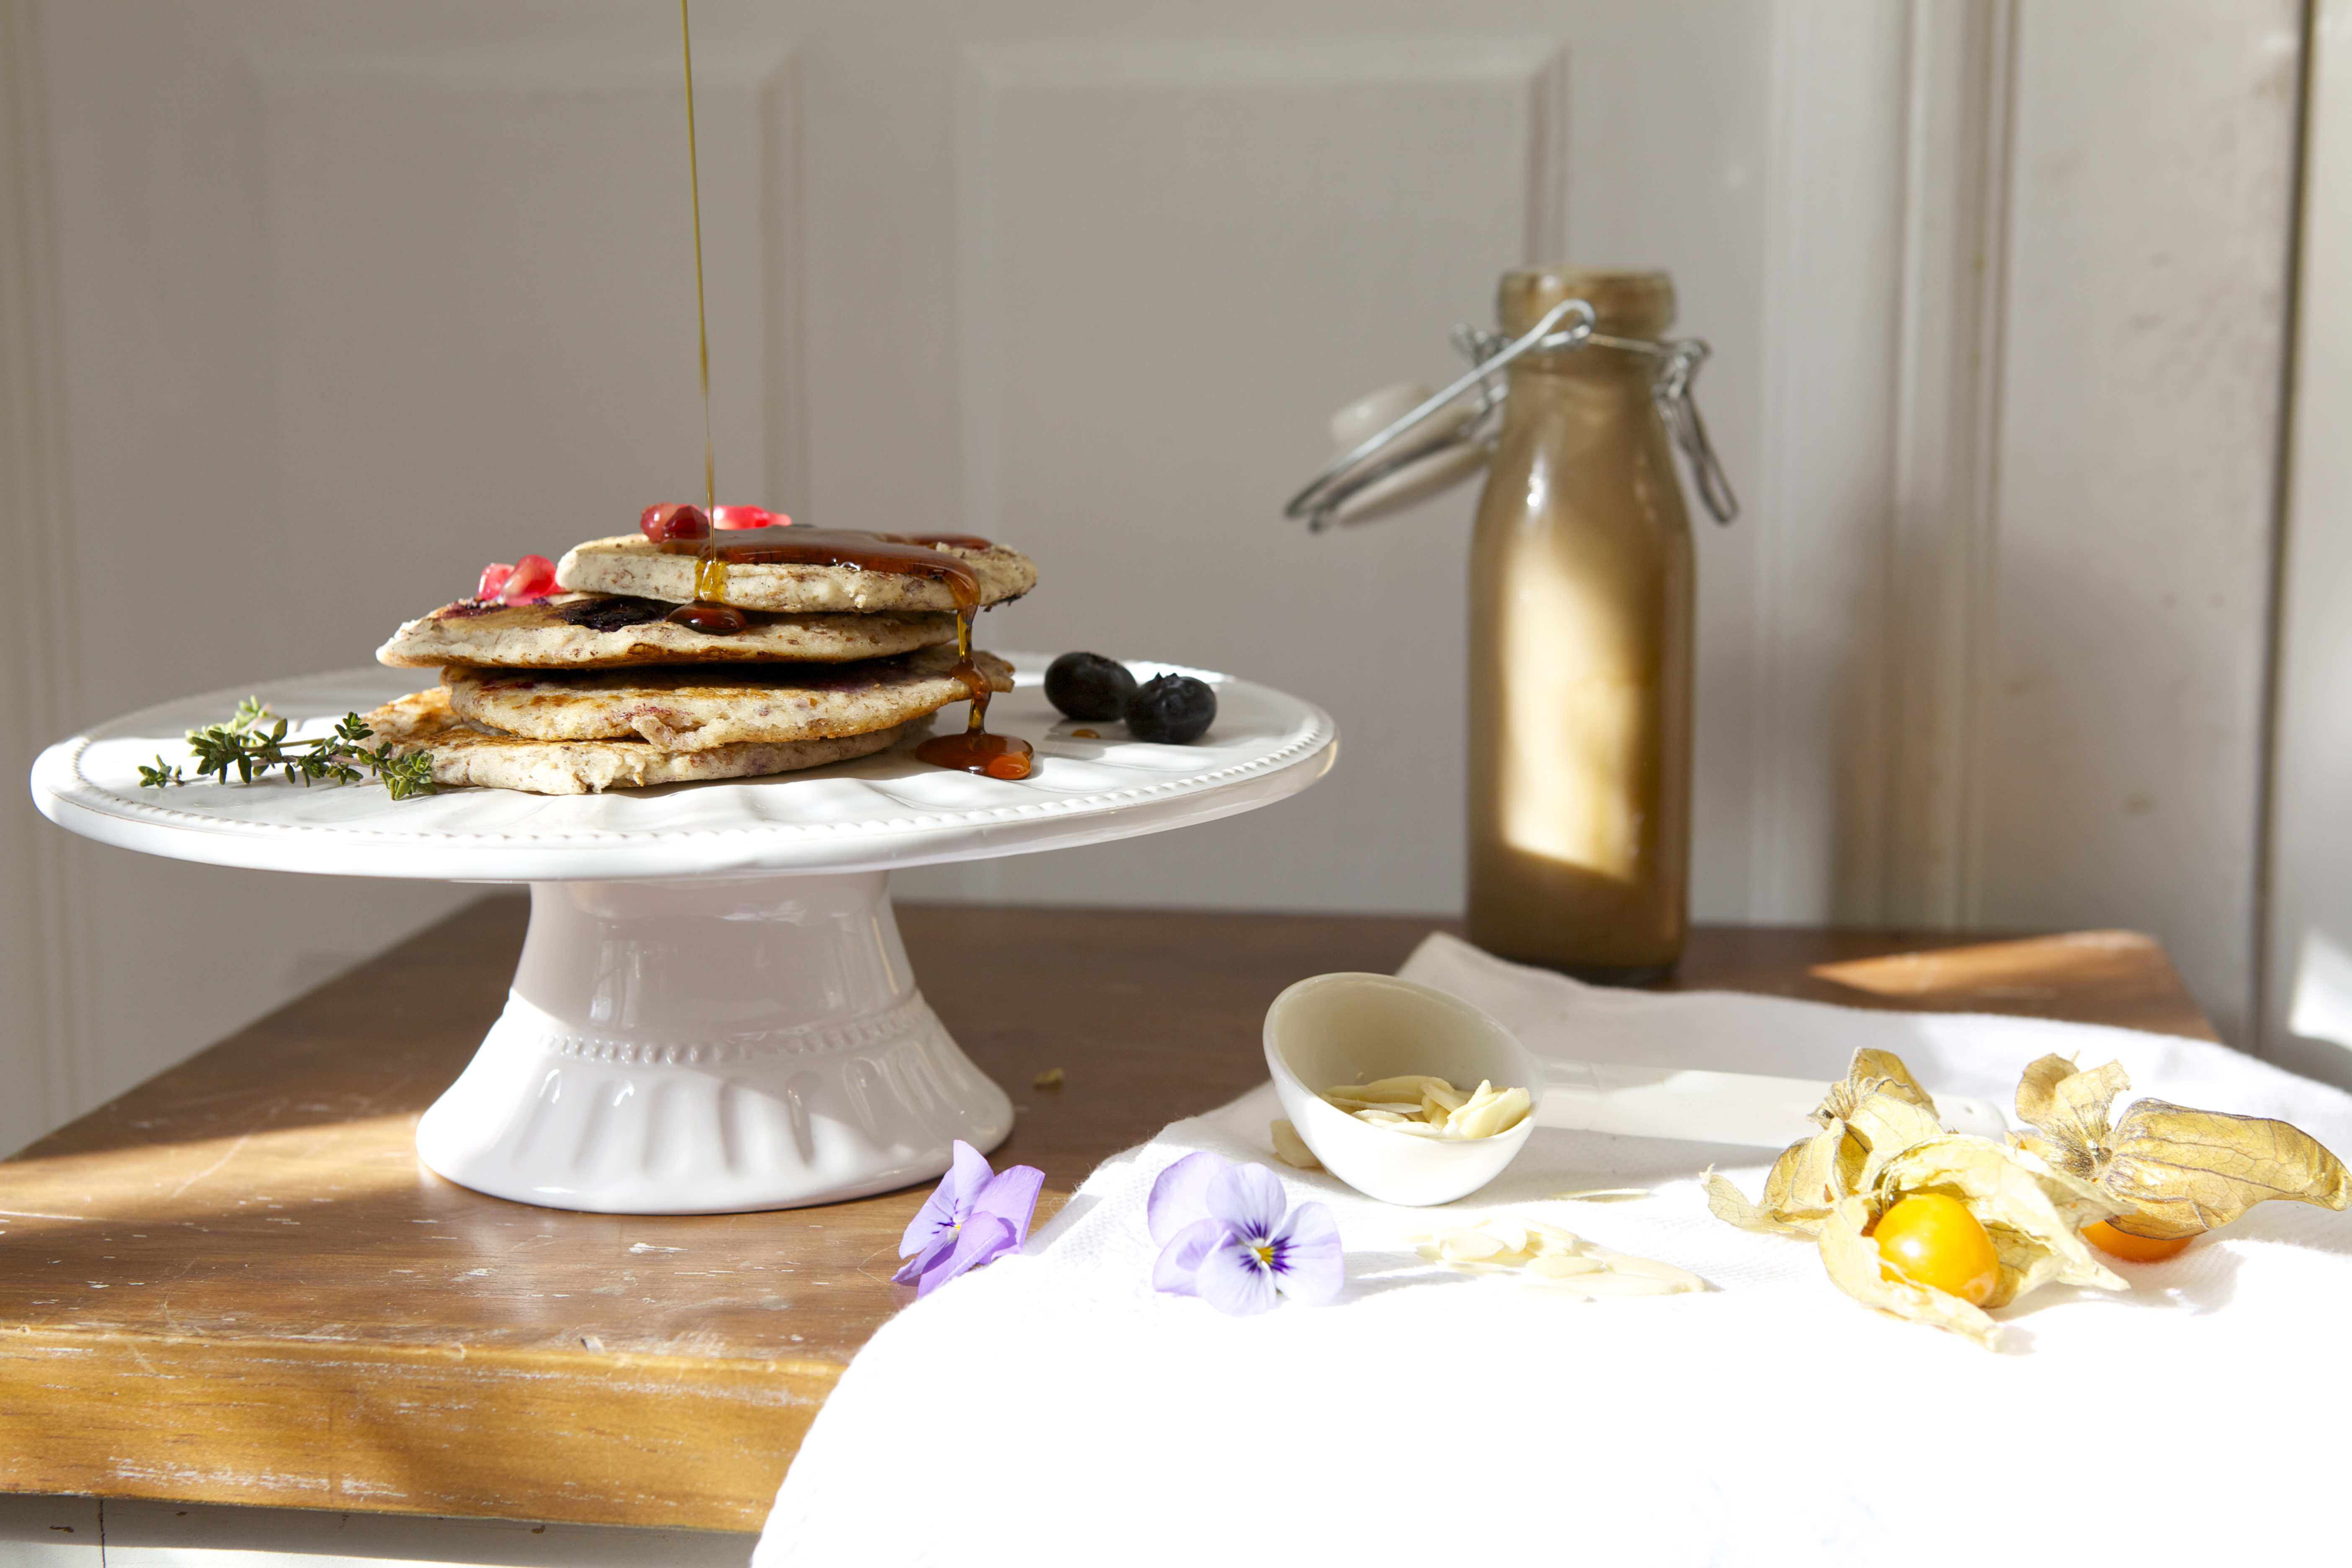 Vegan almond pancakes, vegan recipe, vegetarian, ecomil, almond cooking cream, dairy-free, lactose-free